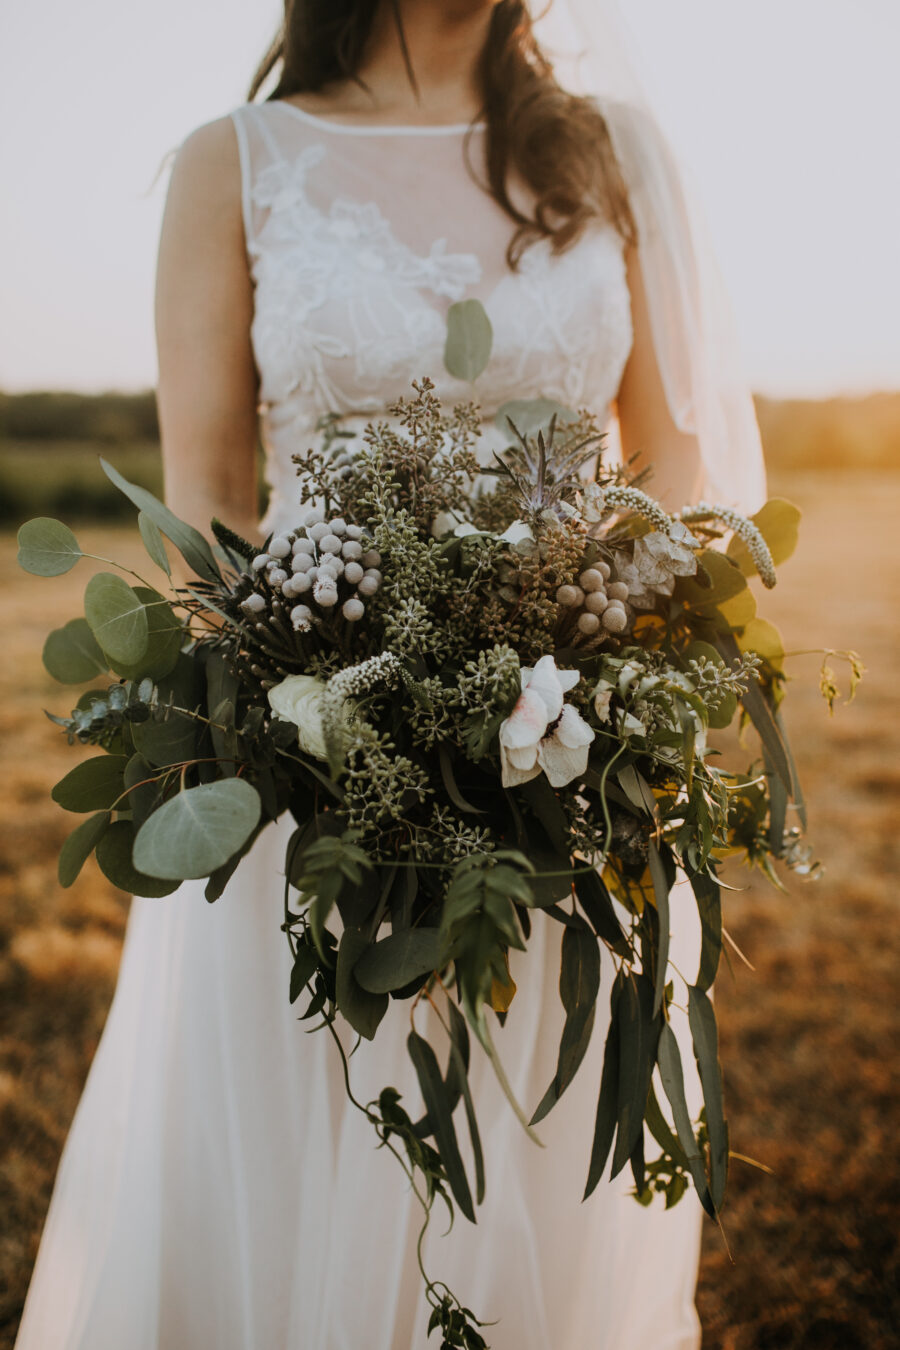 Wedding bouquet: Nashville Wedding with Beautiful Views by Teale Photography featured on Nashville Bride Guide